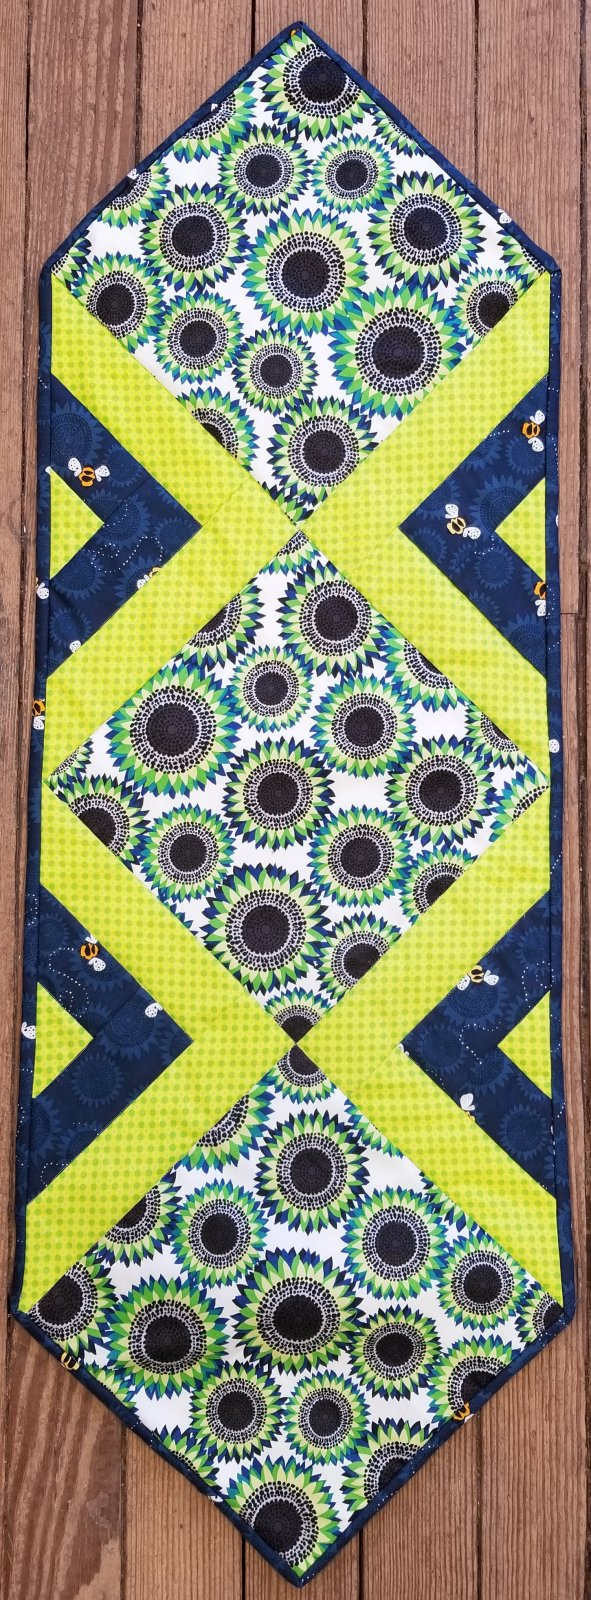 In the Middle Sunflowers and Bees Fabric Kit